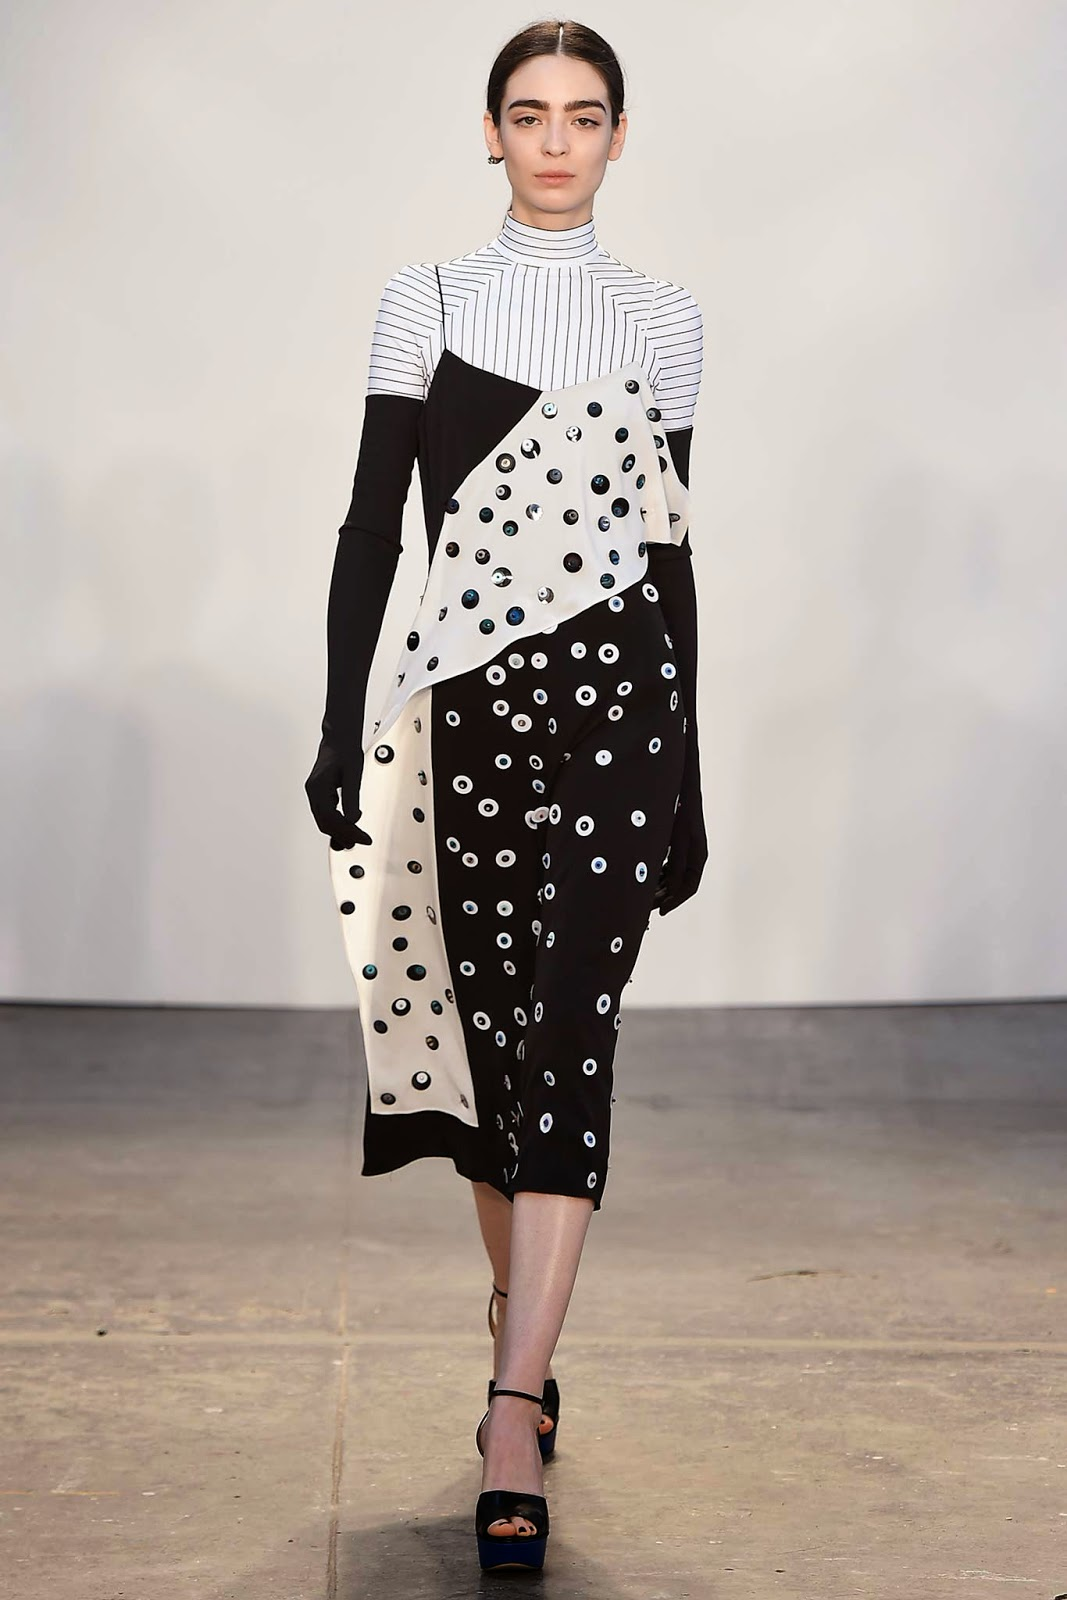 Tanya Taylor Fall Winter 2015 black and white dress with dots & circles print